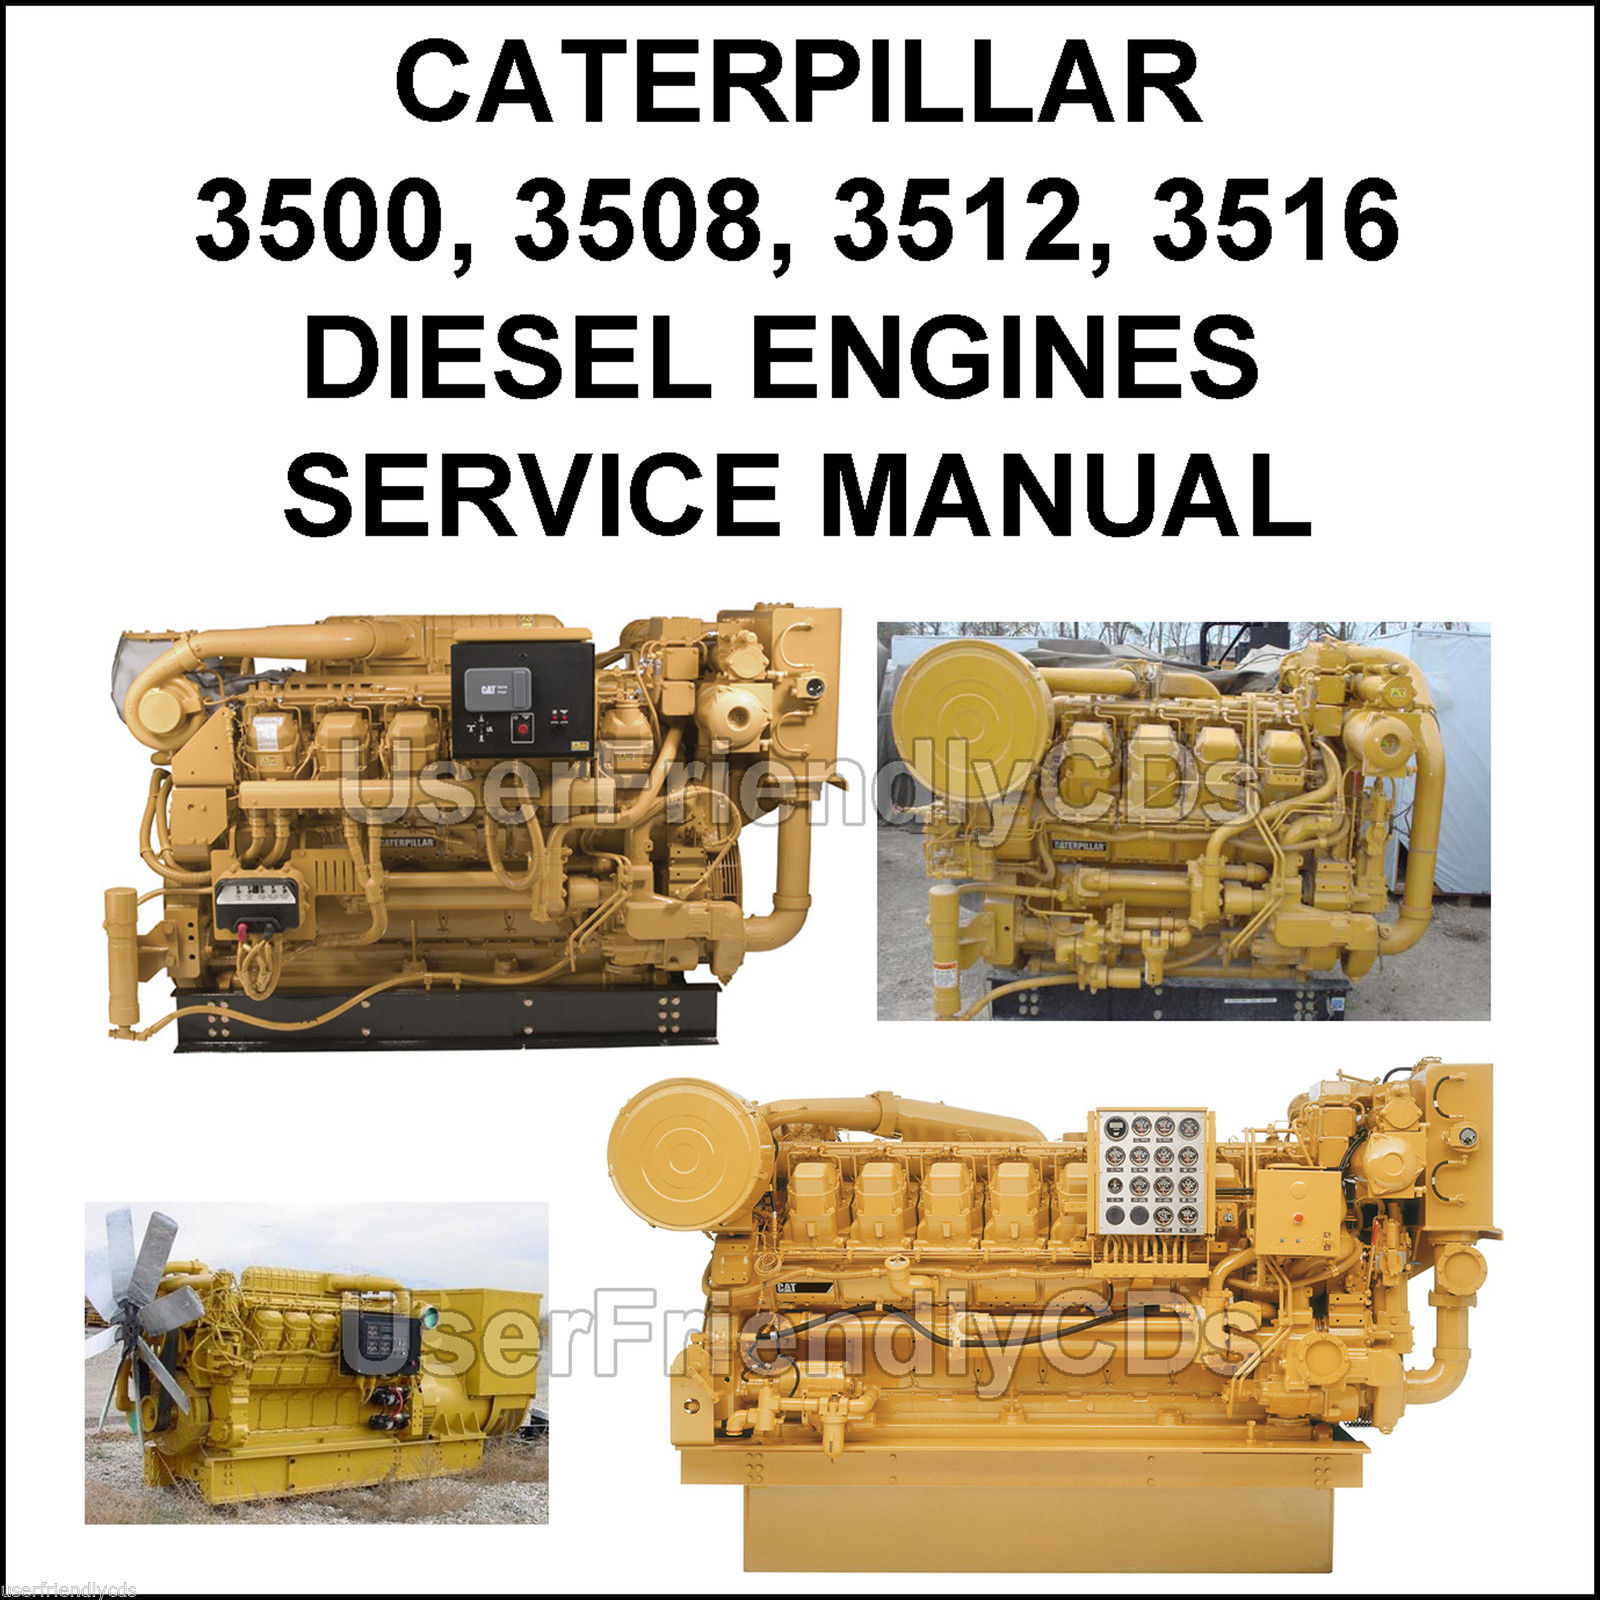 caterpillar 3500 3508 3512 3516 diesel and 50 similar items rh bonanza com Caterpillar C15 Manual caterpillar 3512 parts manual